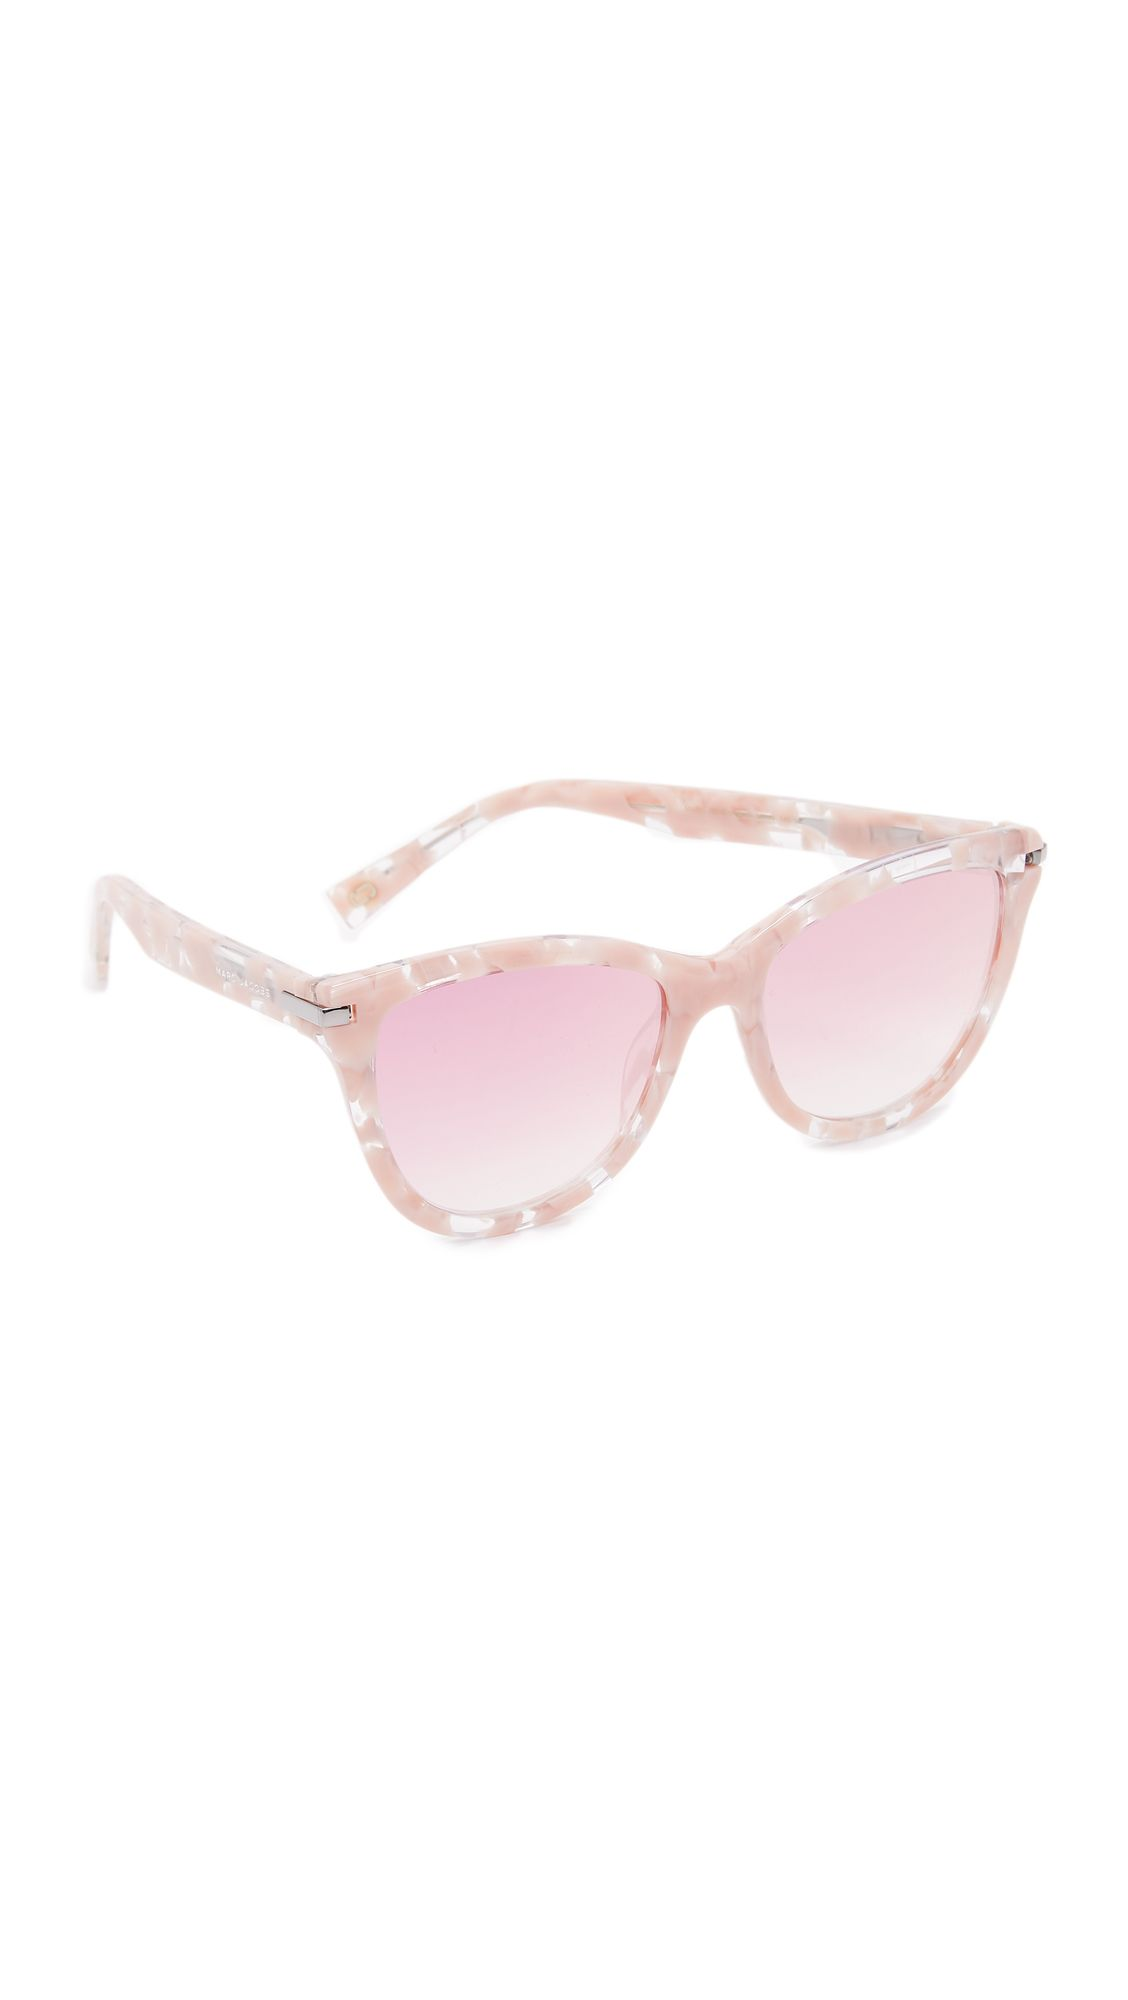 Pink Cat Eye Sunglasses by Marc Jacobs | I want it | Pinterest